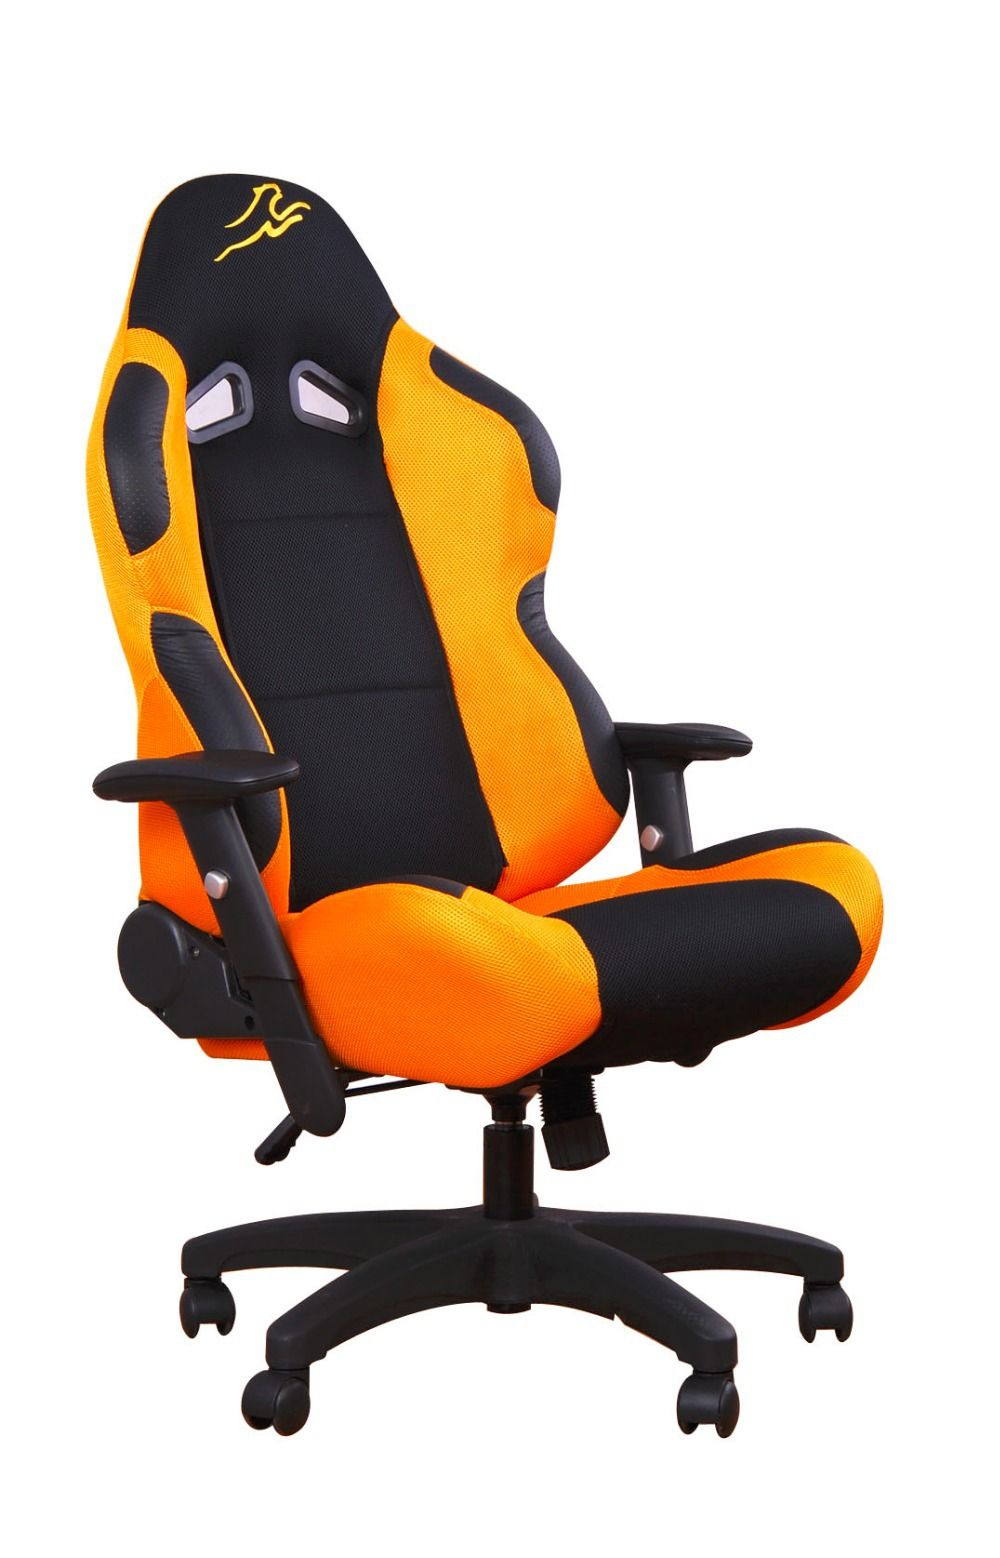 Cool New Race Car Office Chair 86 In Home Decor Ideas With Check More At Http Good Furniture